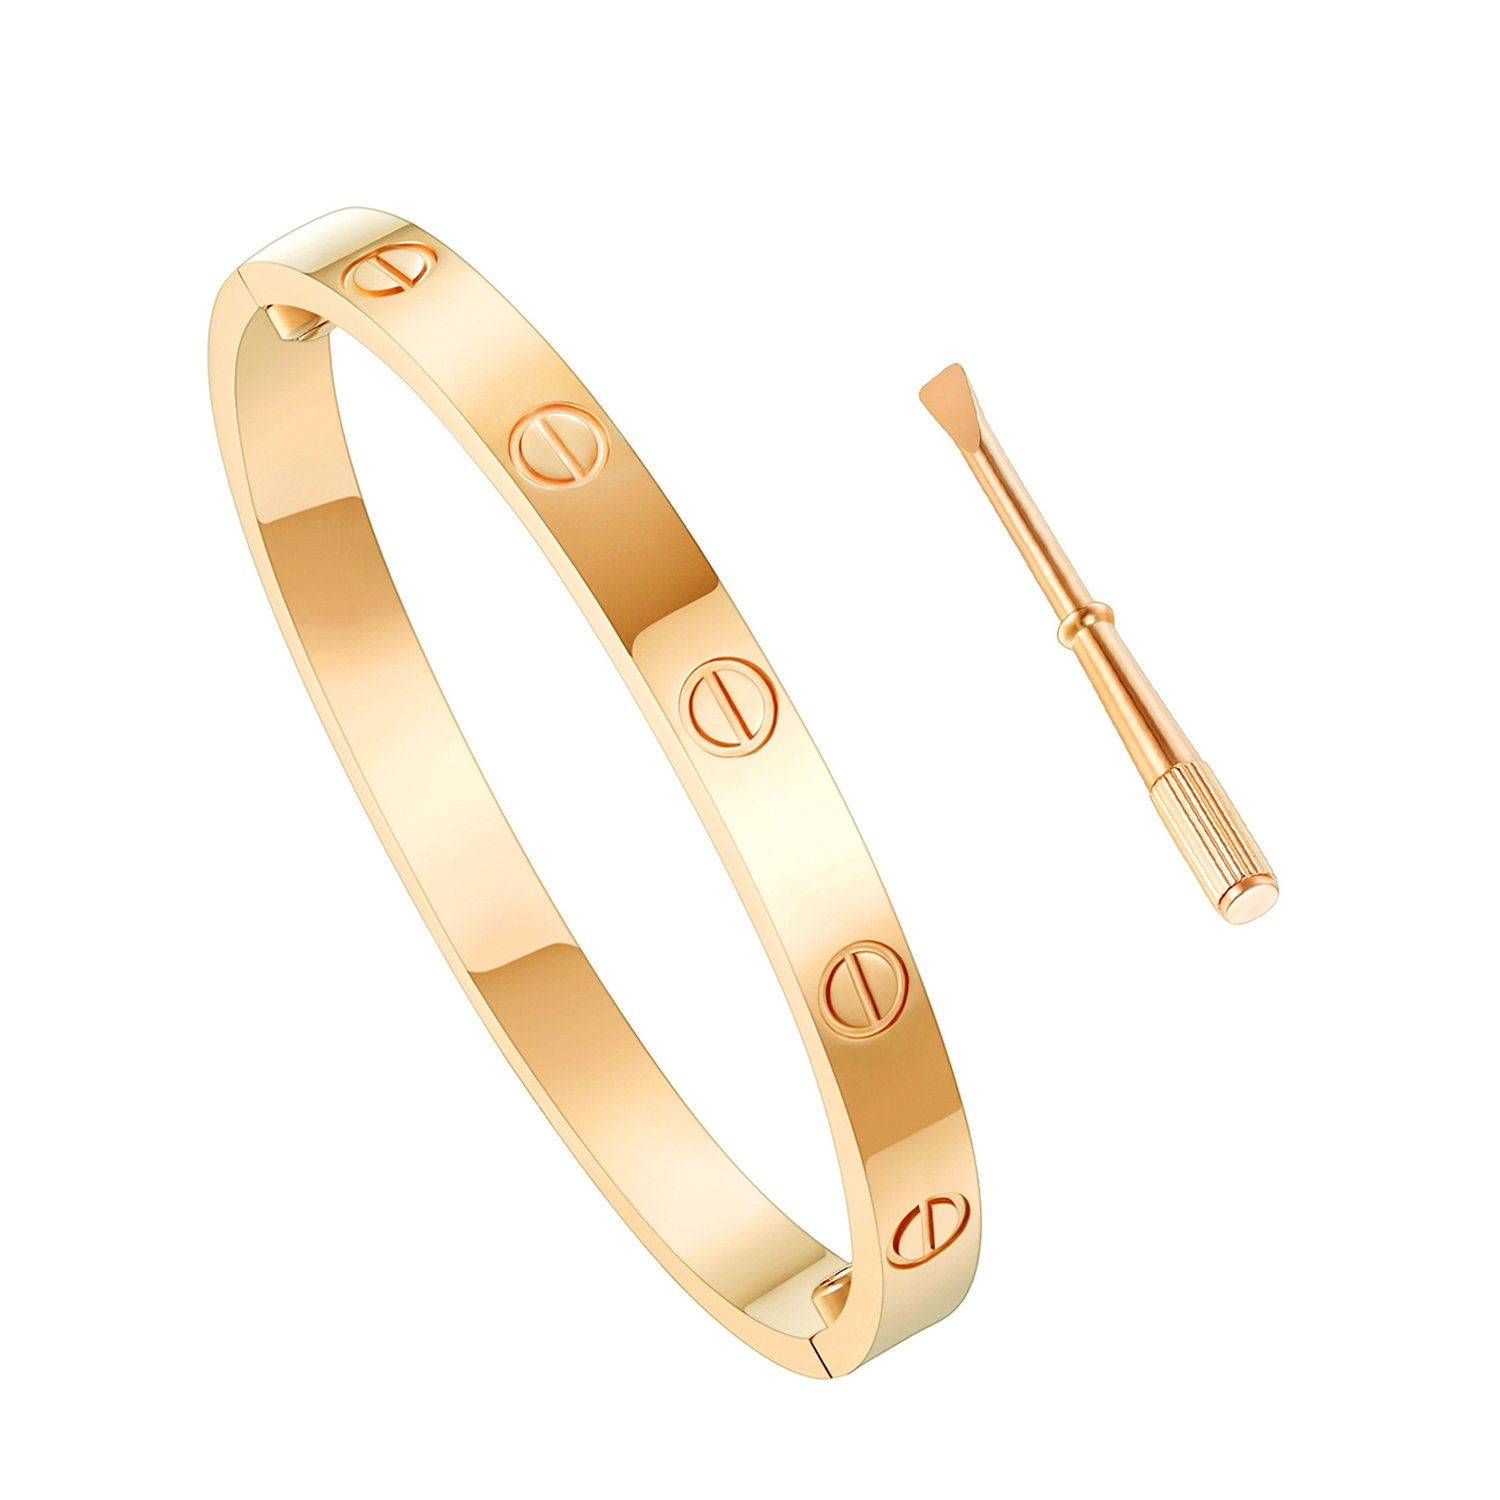 Z.RACLE Love Bangle Bracelet Stainless Steel Screw - Best Gift Love - 6.3IN Gold